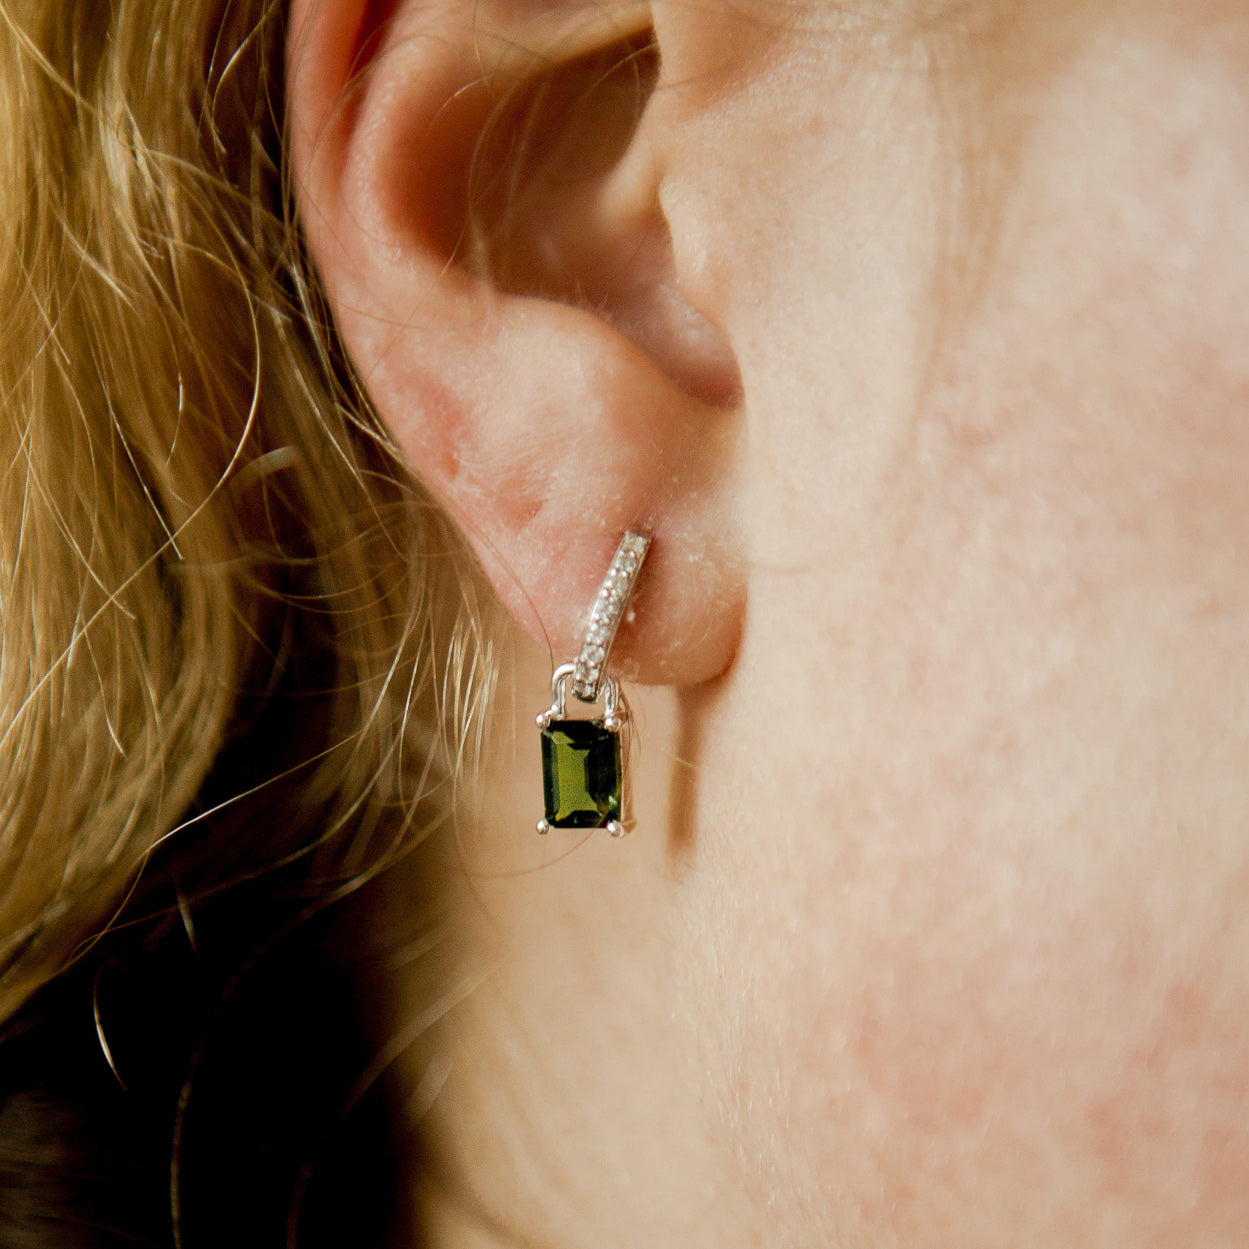 925 Silver Luxe Series Earrings Charms - Celia (Chrome Diopside)